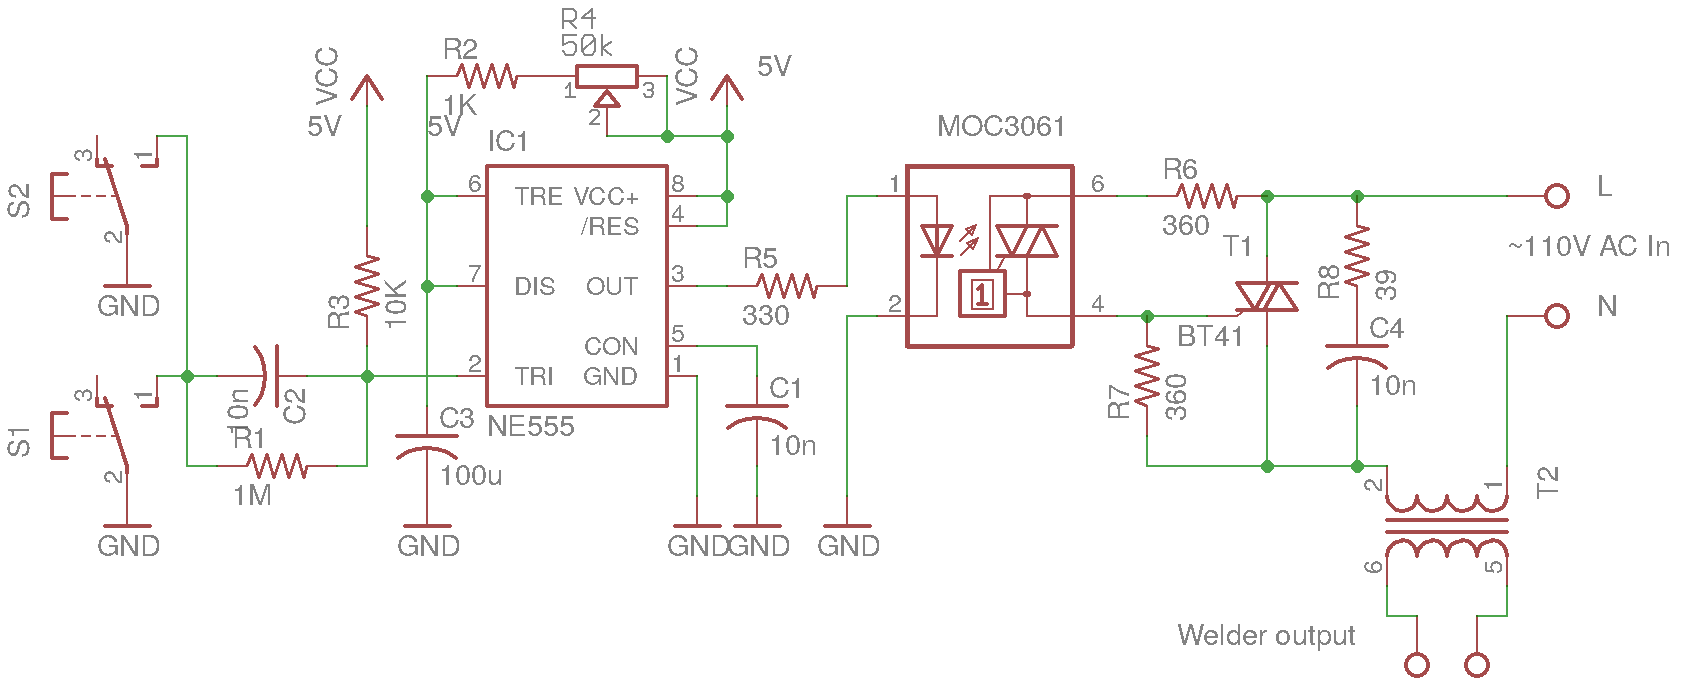 Welder Wiring Schematic Ac Diagram